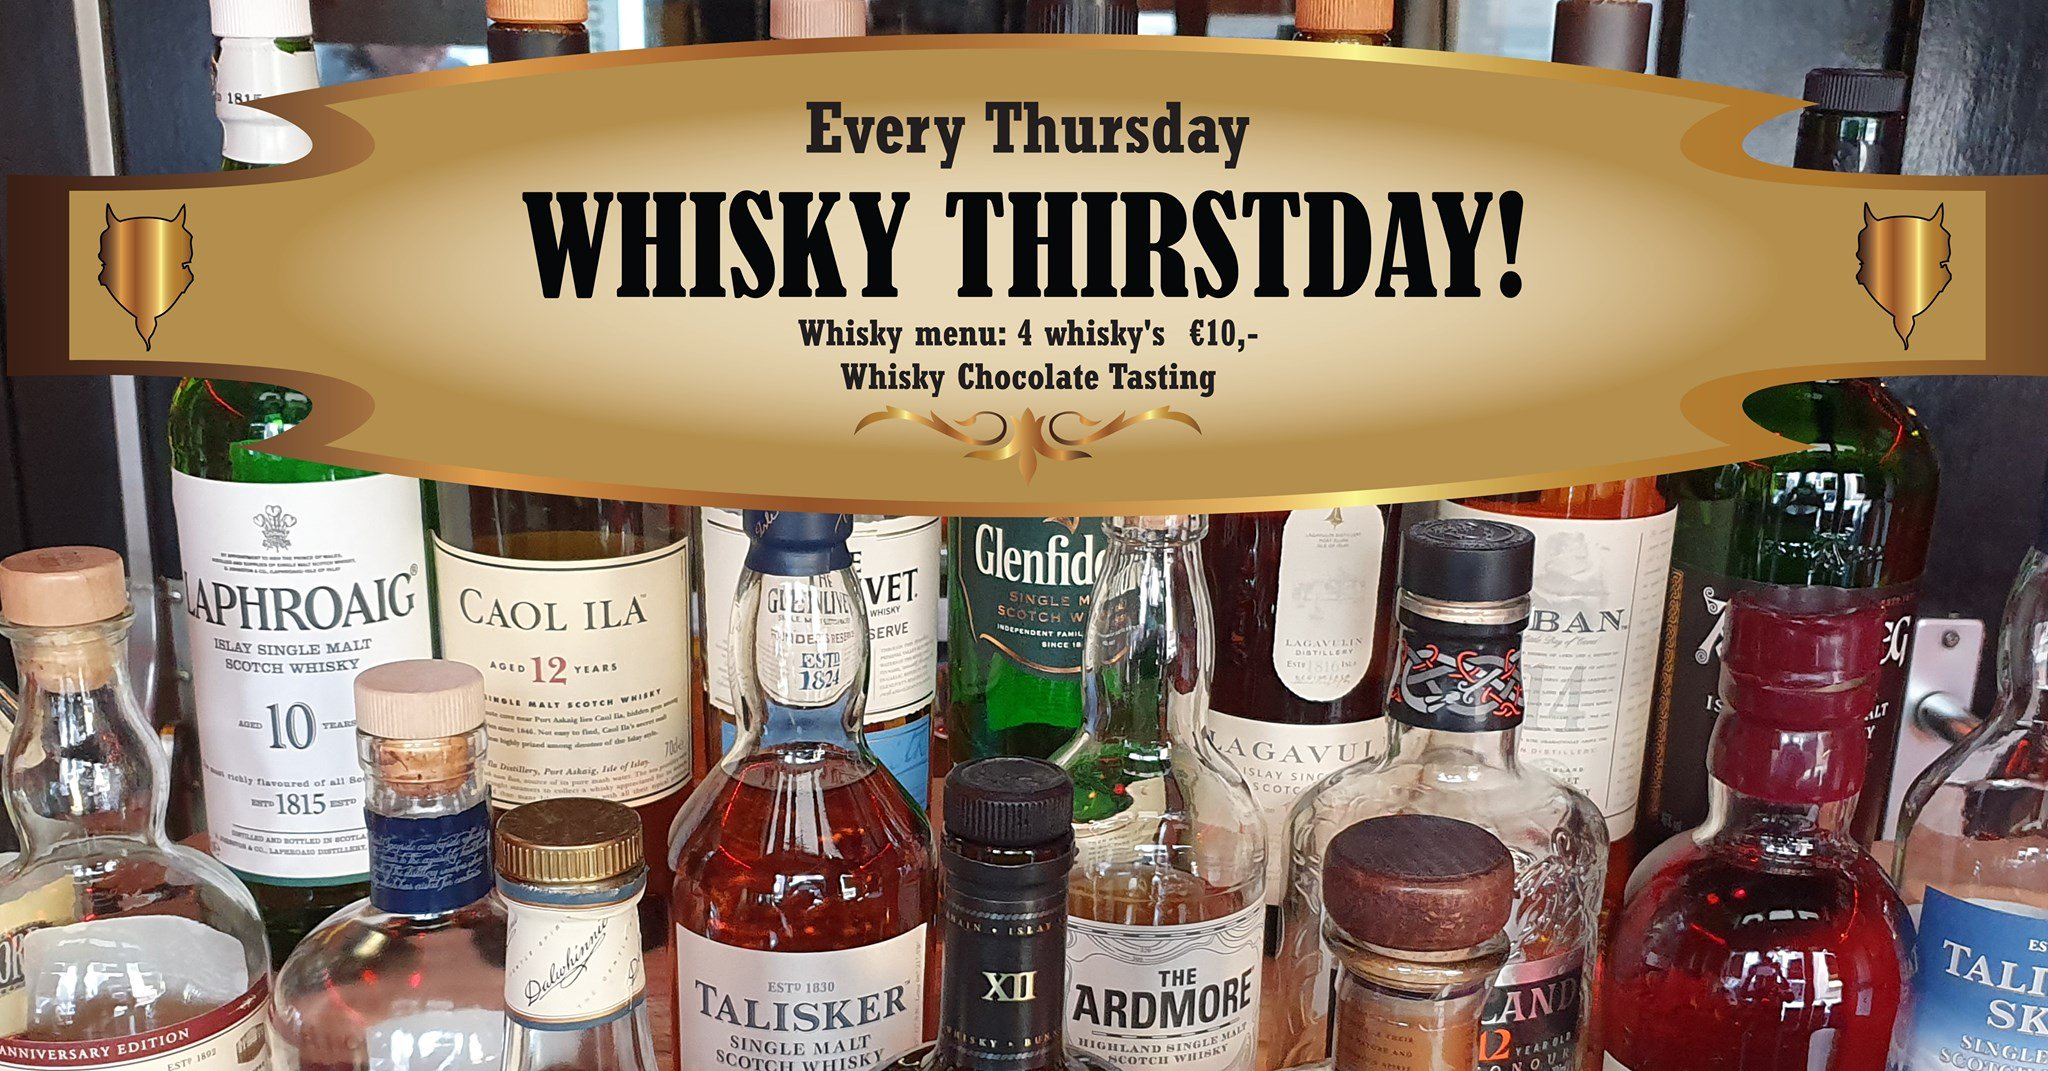 Whisky Thirstday!